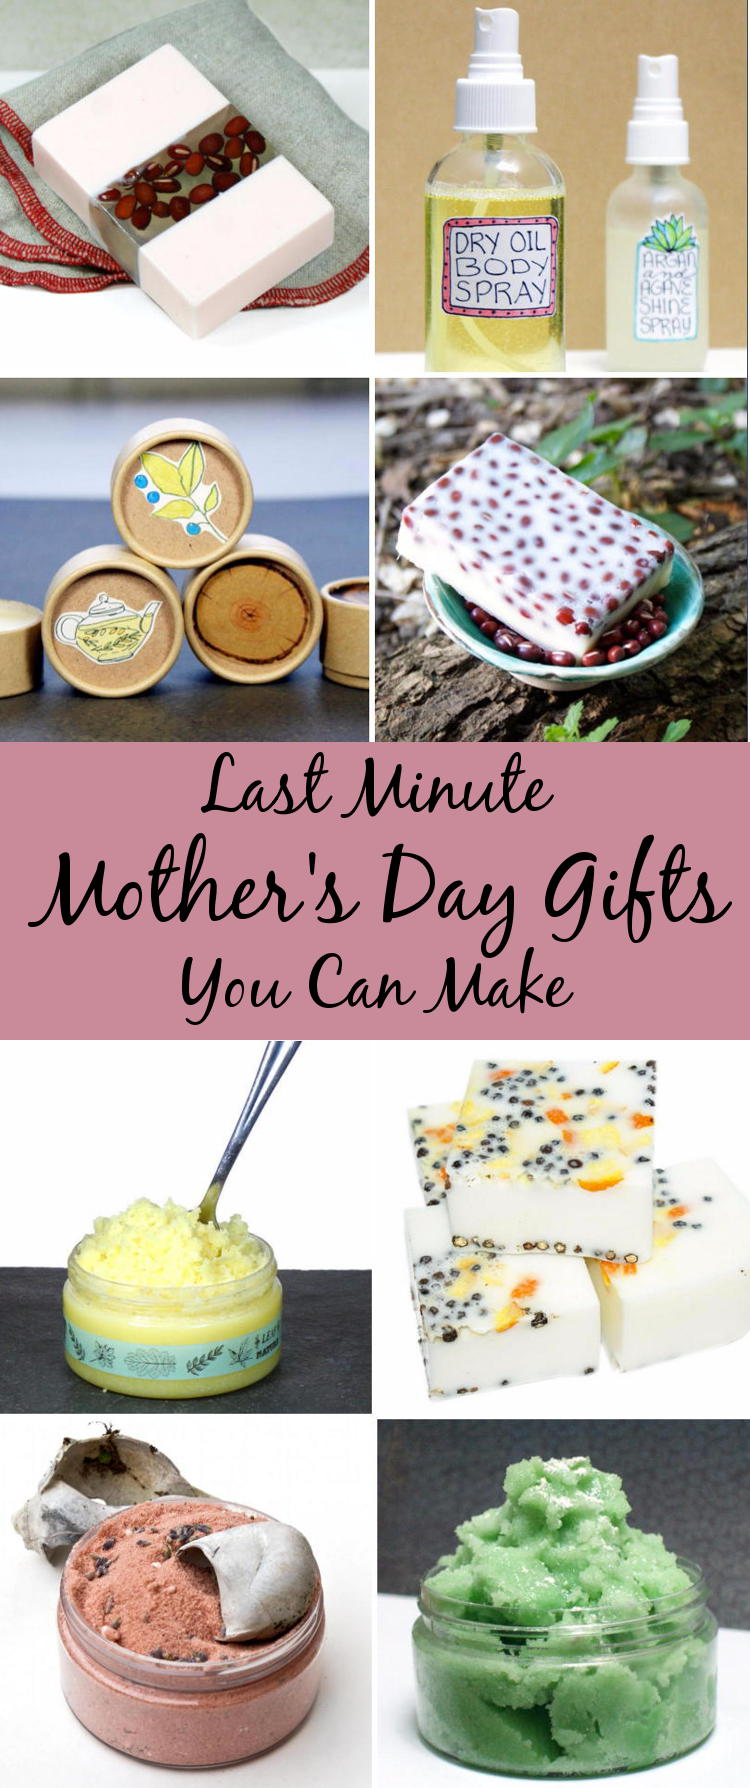 If you're still on the hunt for last minute Mother's day gift ideas, then you'll love this collection of Mother's day gift ideas you can DIY for mom in an afternoon that are ready for gifting the same day!